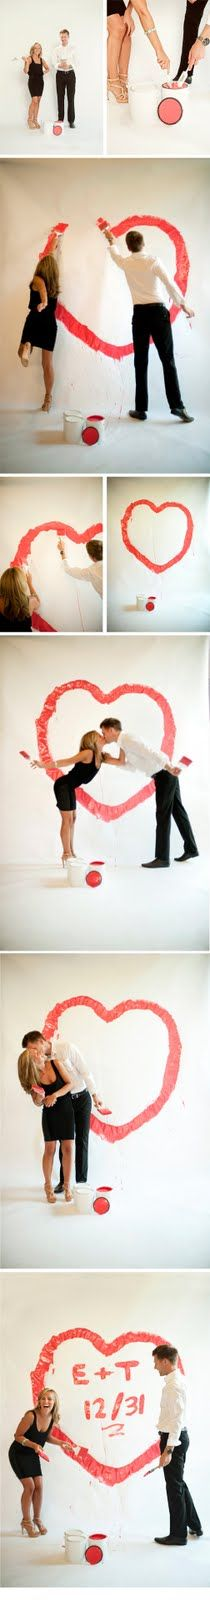 too freakin cute-save the dates